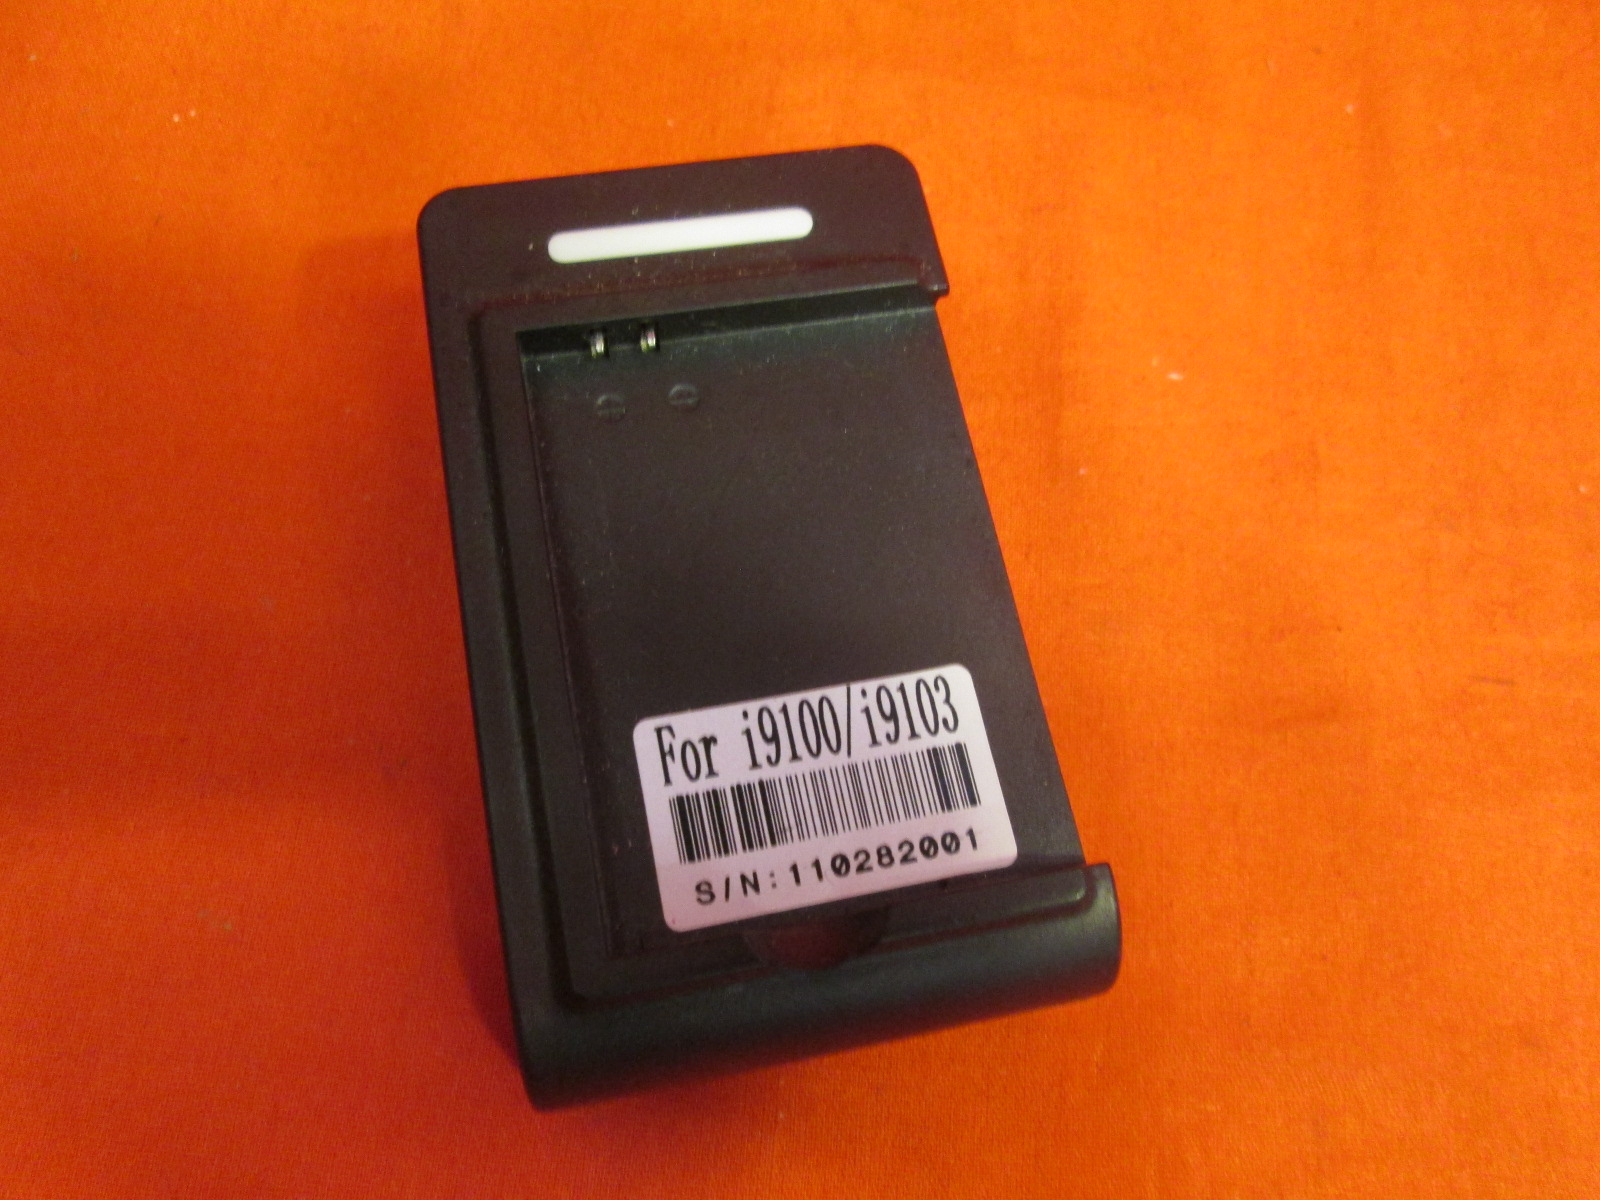 Digital Camera Battery Charger For Samsung I9100 I9103 I9188 I9108